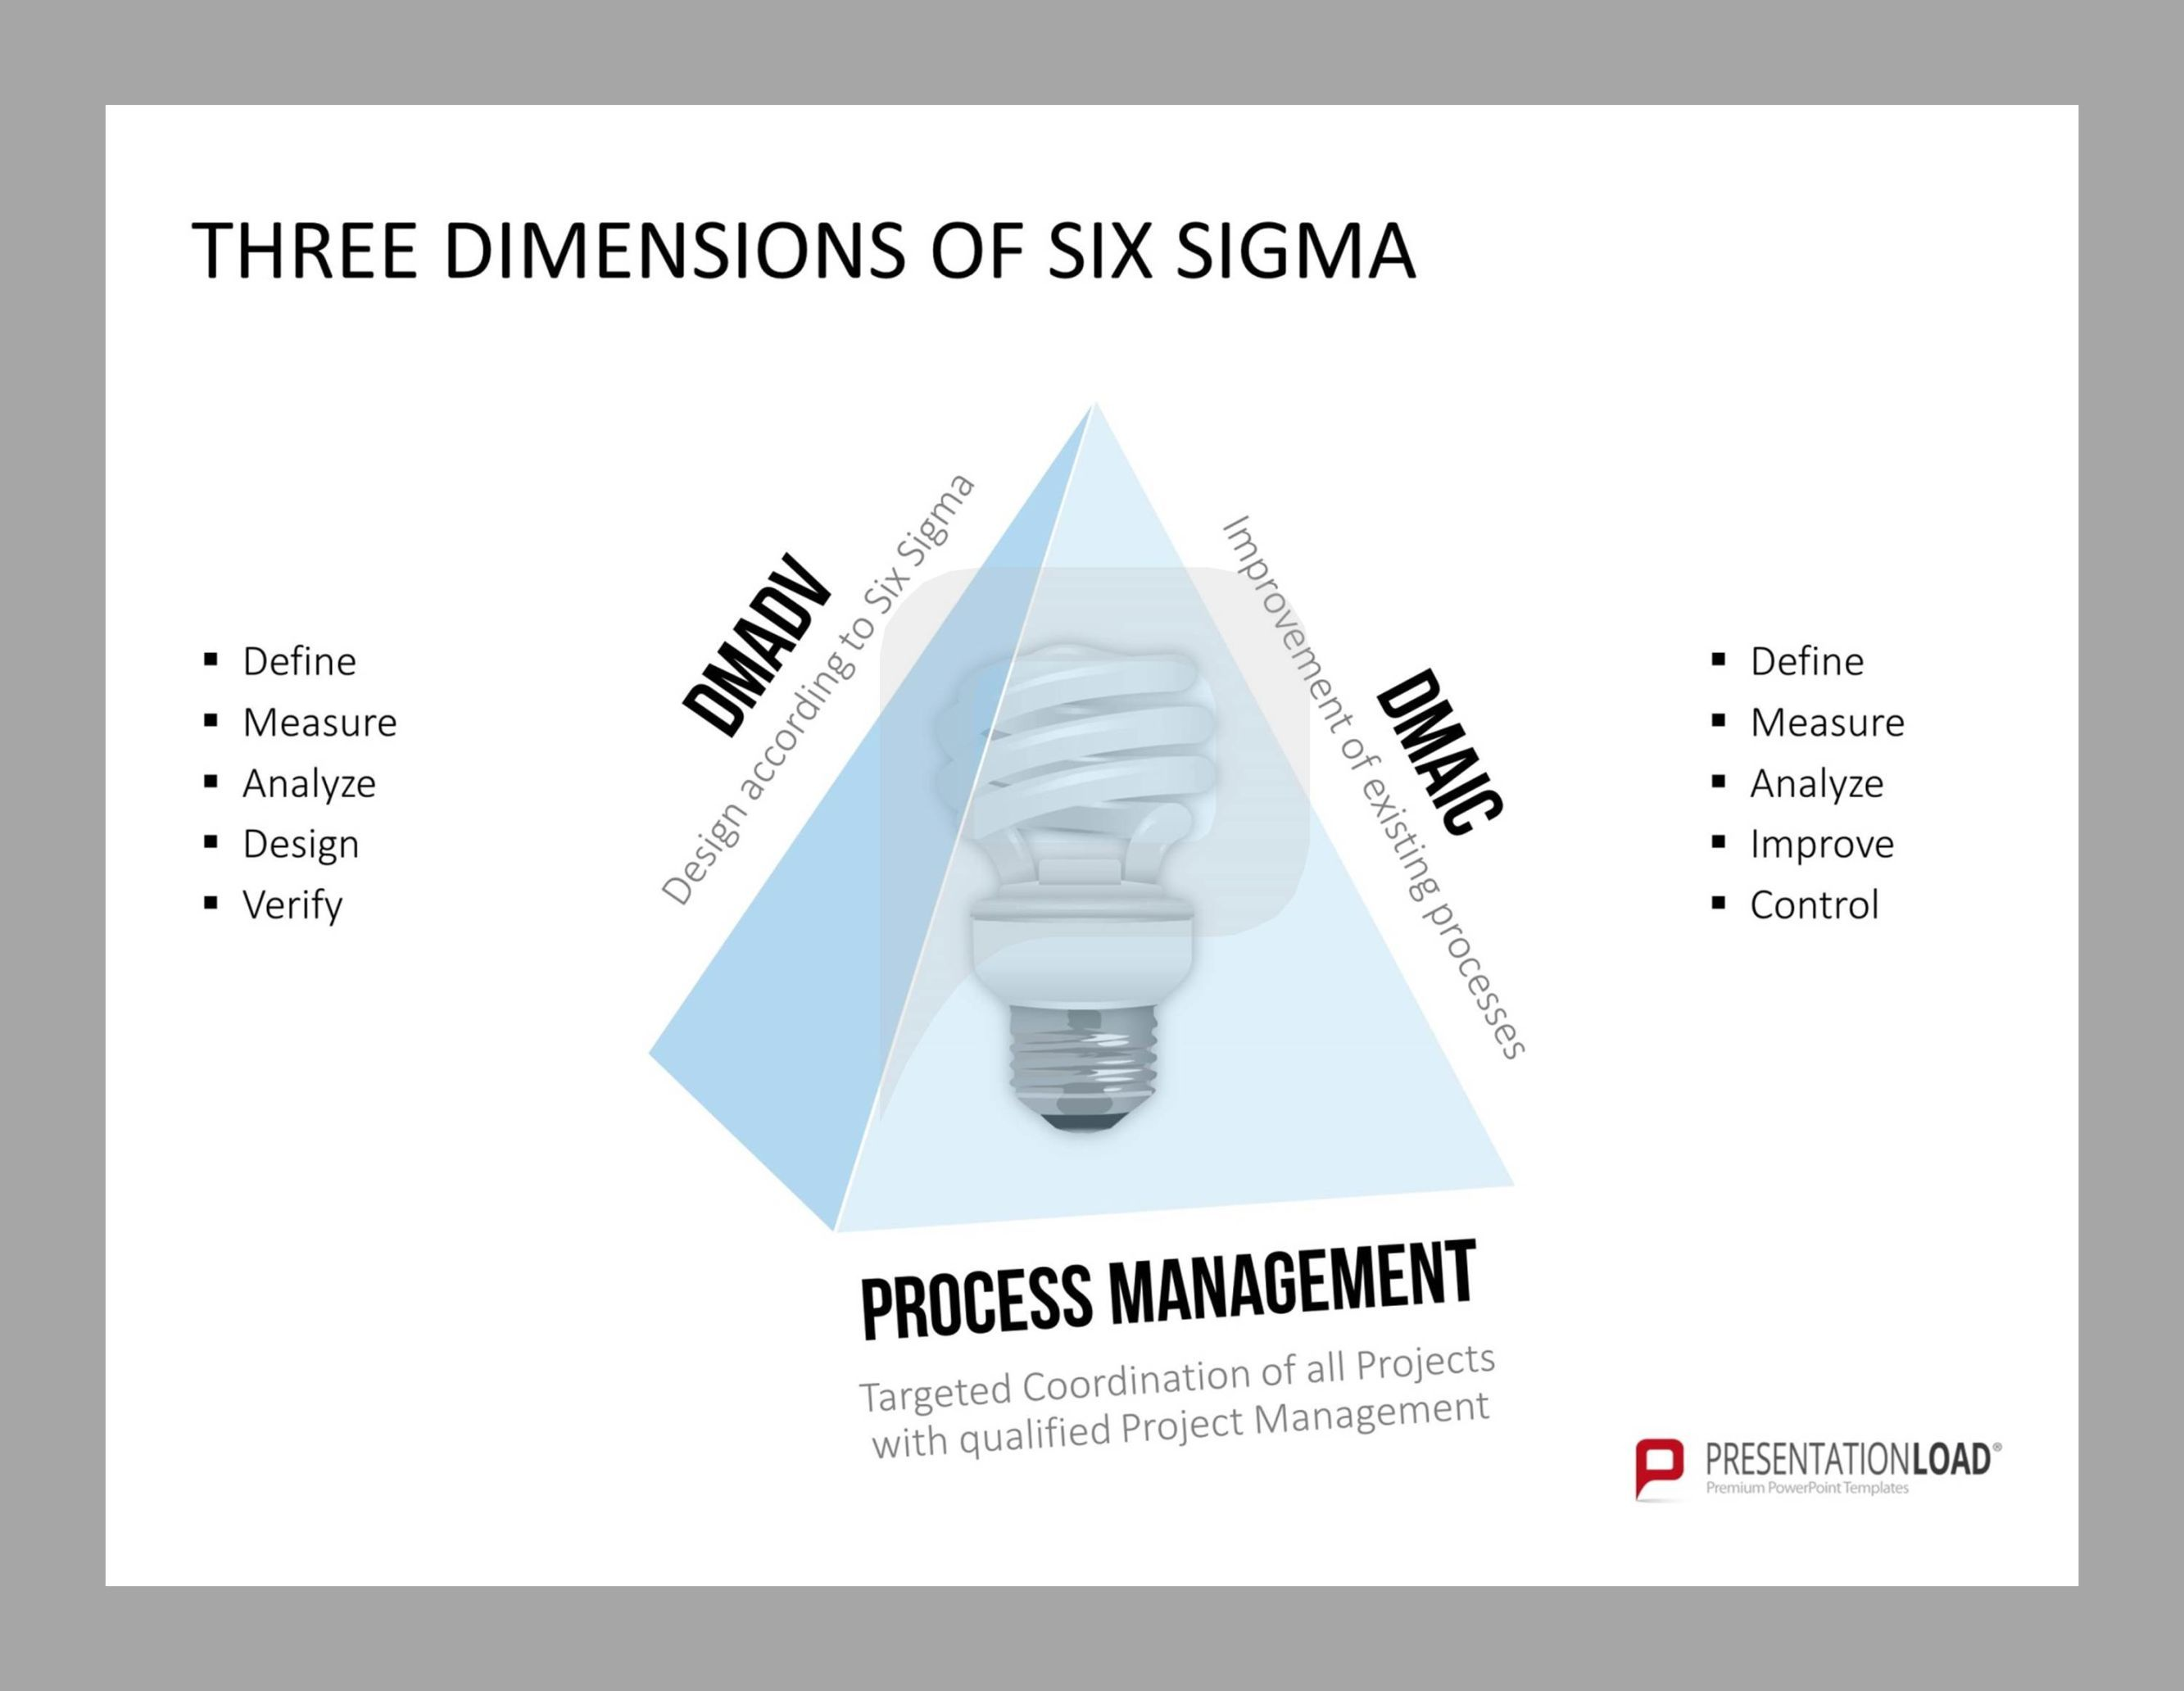 Coolmathgamesus  Inspiring  Images About Quality Management  Powerpoint Templates On  With Fetching Three Dimensions Of Six Sigma Dmadv Dmaic Amp Process Management  Six Sigma  Powerpointtemplates  With Cool Microsoft Powerpoint Free Templates Also Save Powerpoint As Picture In Addition History Powerpoint Template And Powerpoint Newsletter As Well As Powerpoint Presentation Sound Effects Free Download Additionally Pmcs Powerpoint From Pinterestcom With Coolmathgamesus  Fetching  Images About Quality Management  Powerpoint Templates On  With Cool Three Dimensions Of Six Sigma Dmadv Dmaic Amp Process Management  Six Sigma  Powerpointtemplates  And Inspiring Microsoft Powerpoint Free Templates Also Save Powerpoint As Picture In Addition History Powerpoint Template From Pinterestcom